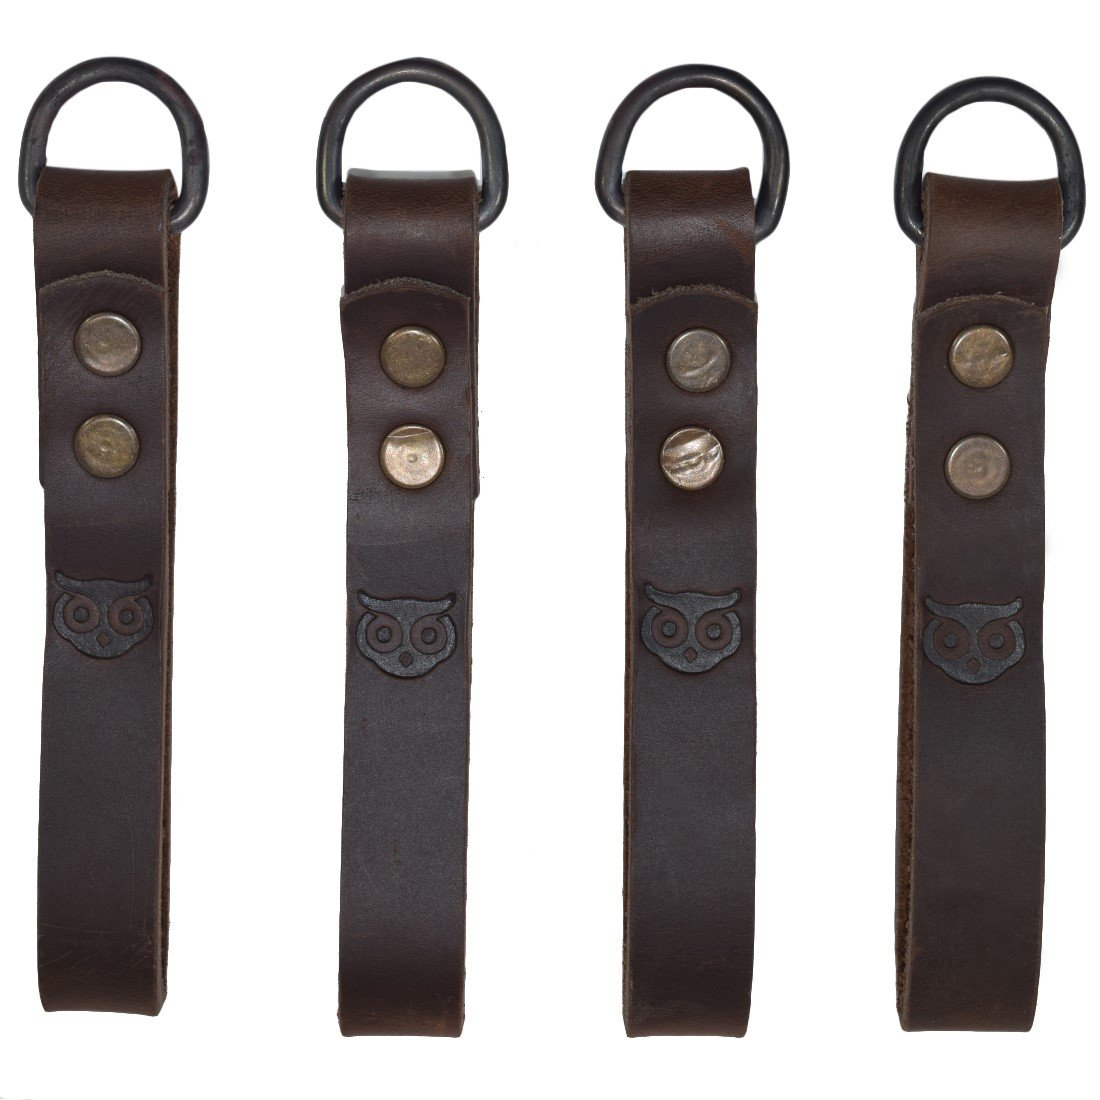 Thick Leather Heavy Duty Tool Belt Accessories Suspender Loop Attachment (4-Pack) Handmade by Hide & Drink :: Bourbon Brown